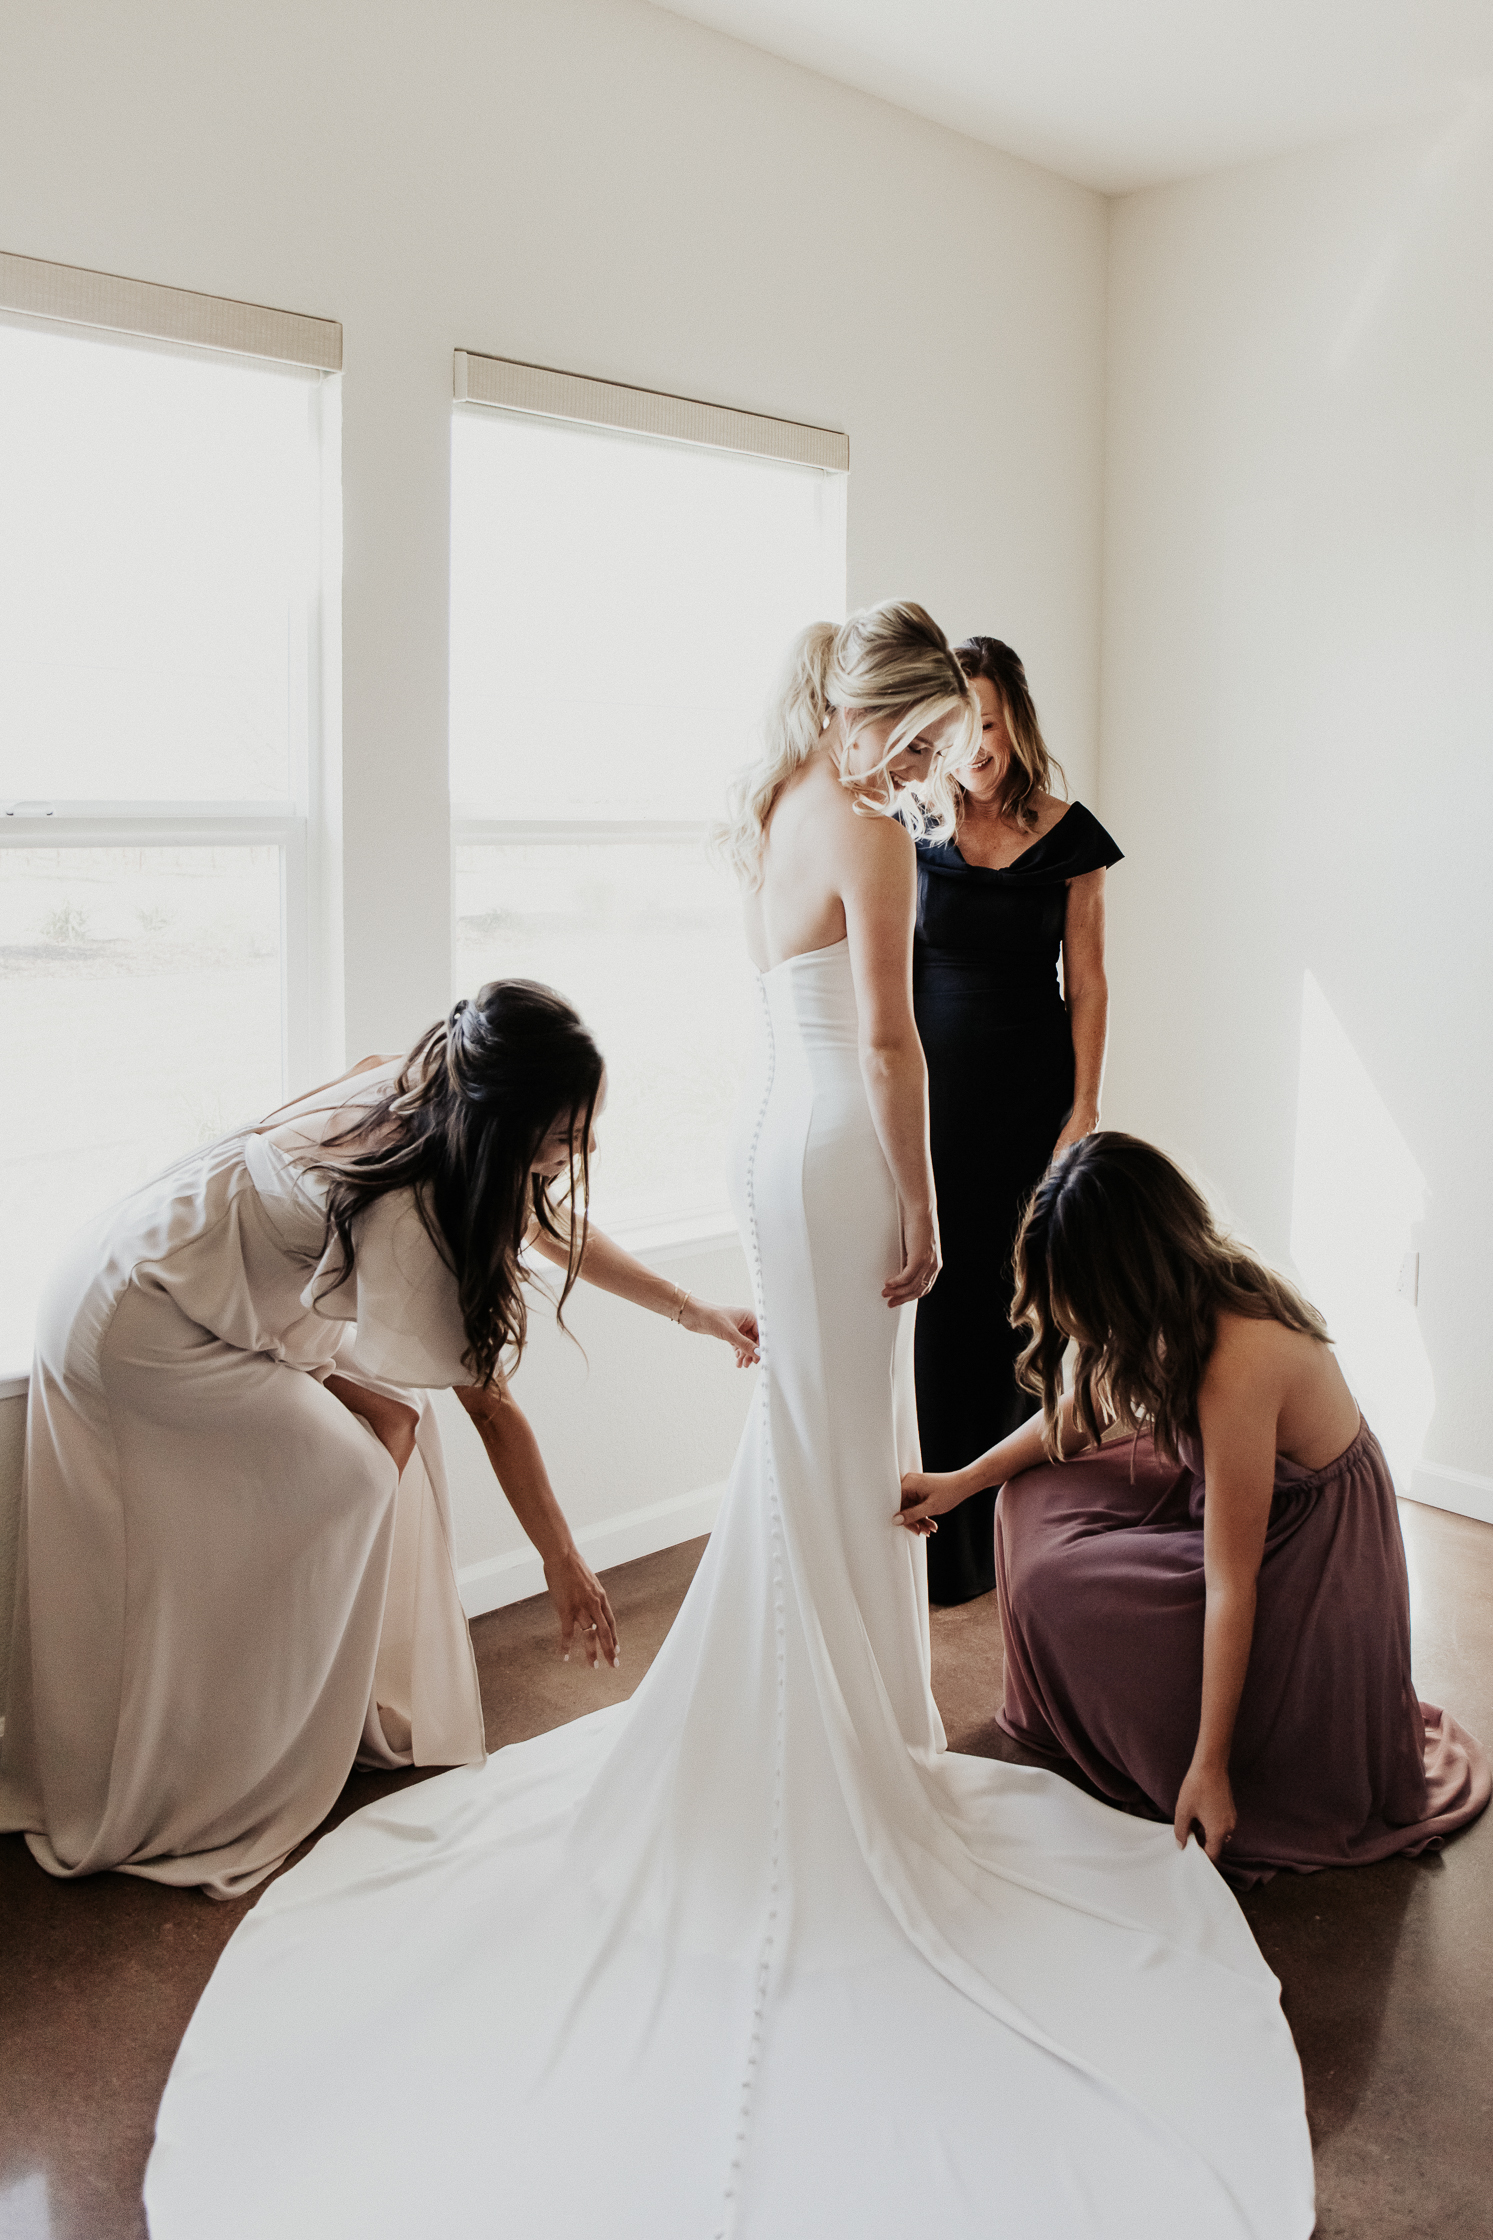 Megan Claire Photography | Northern California Wedding Photographer. Bride getting ready photos @meganclairephoto